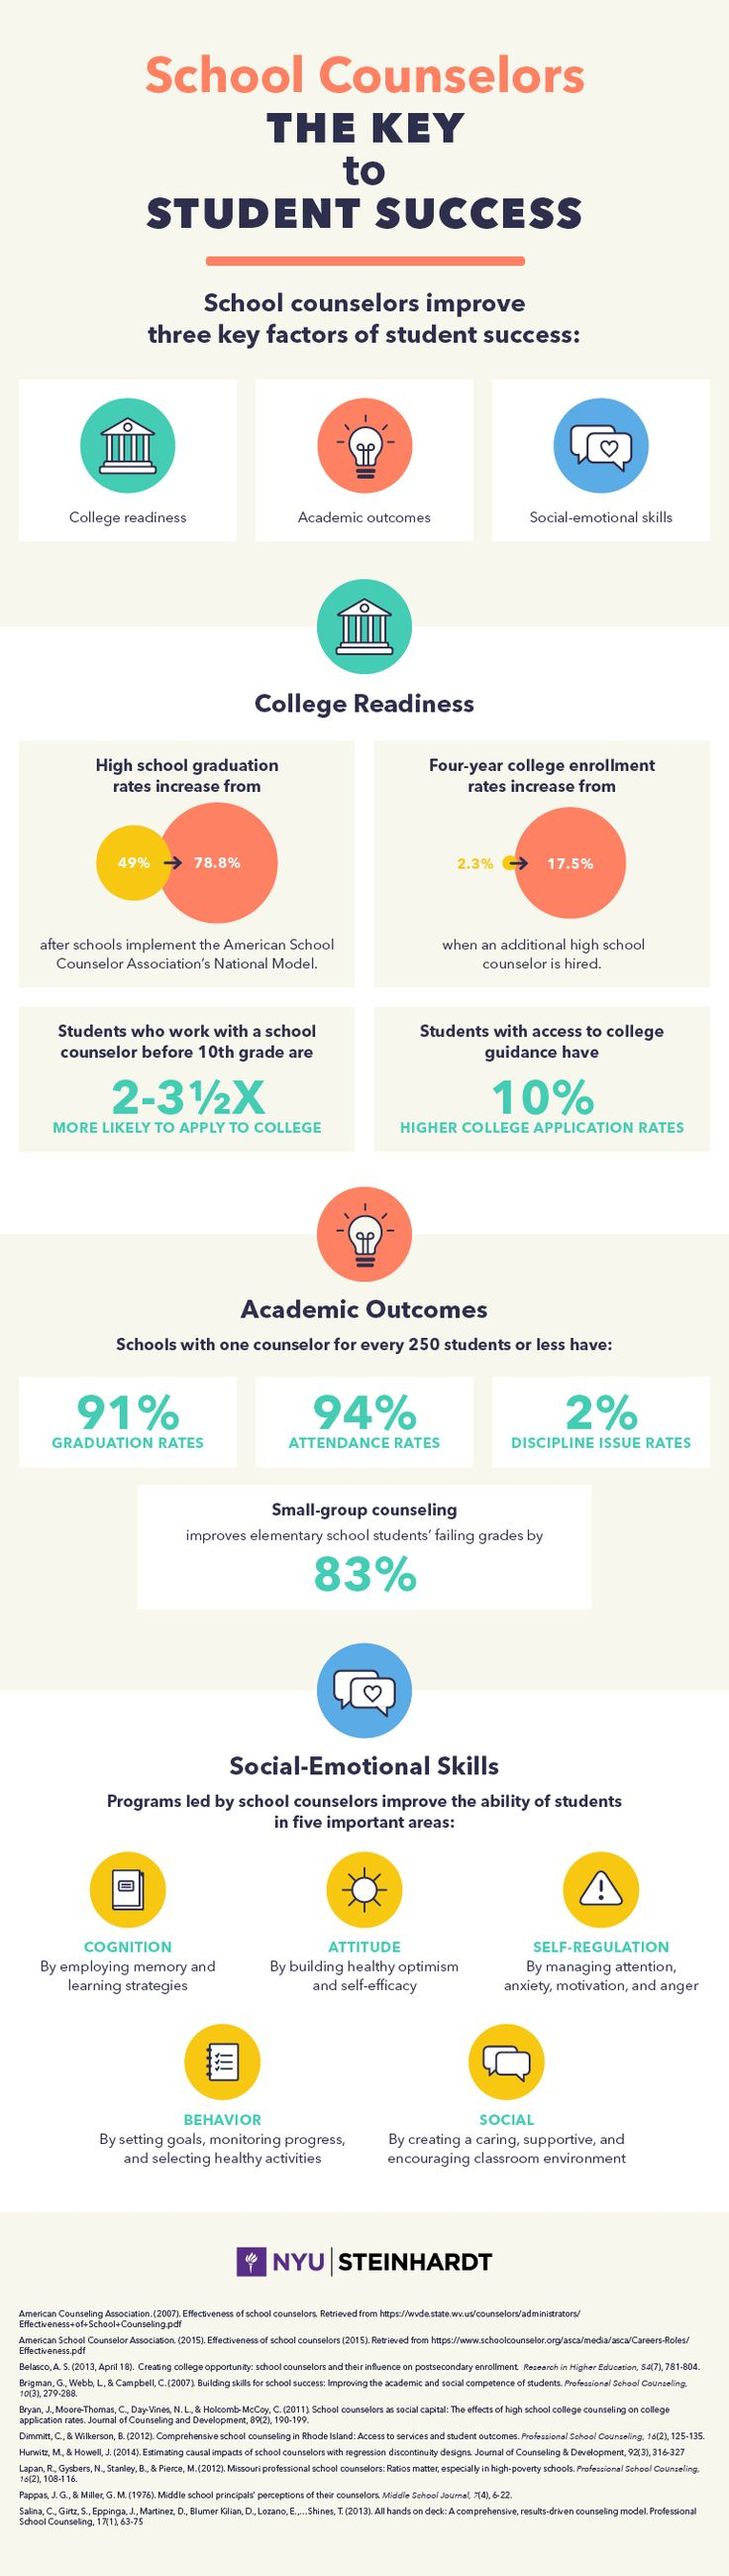 The Best Jobs For College Students - Forbes